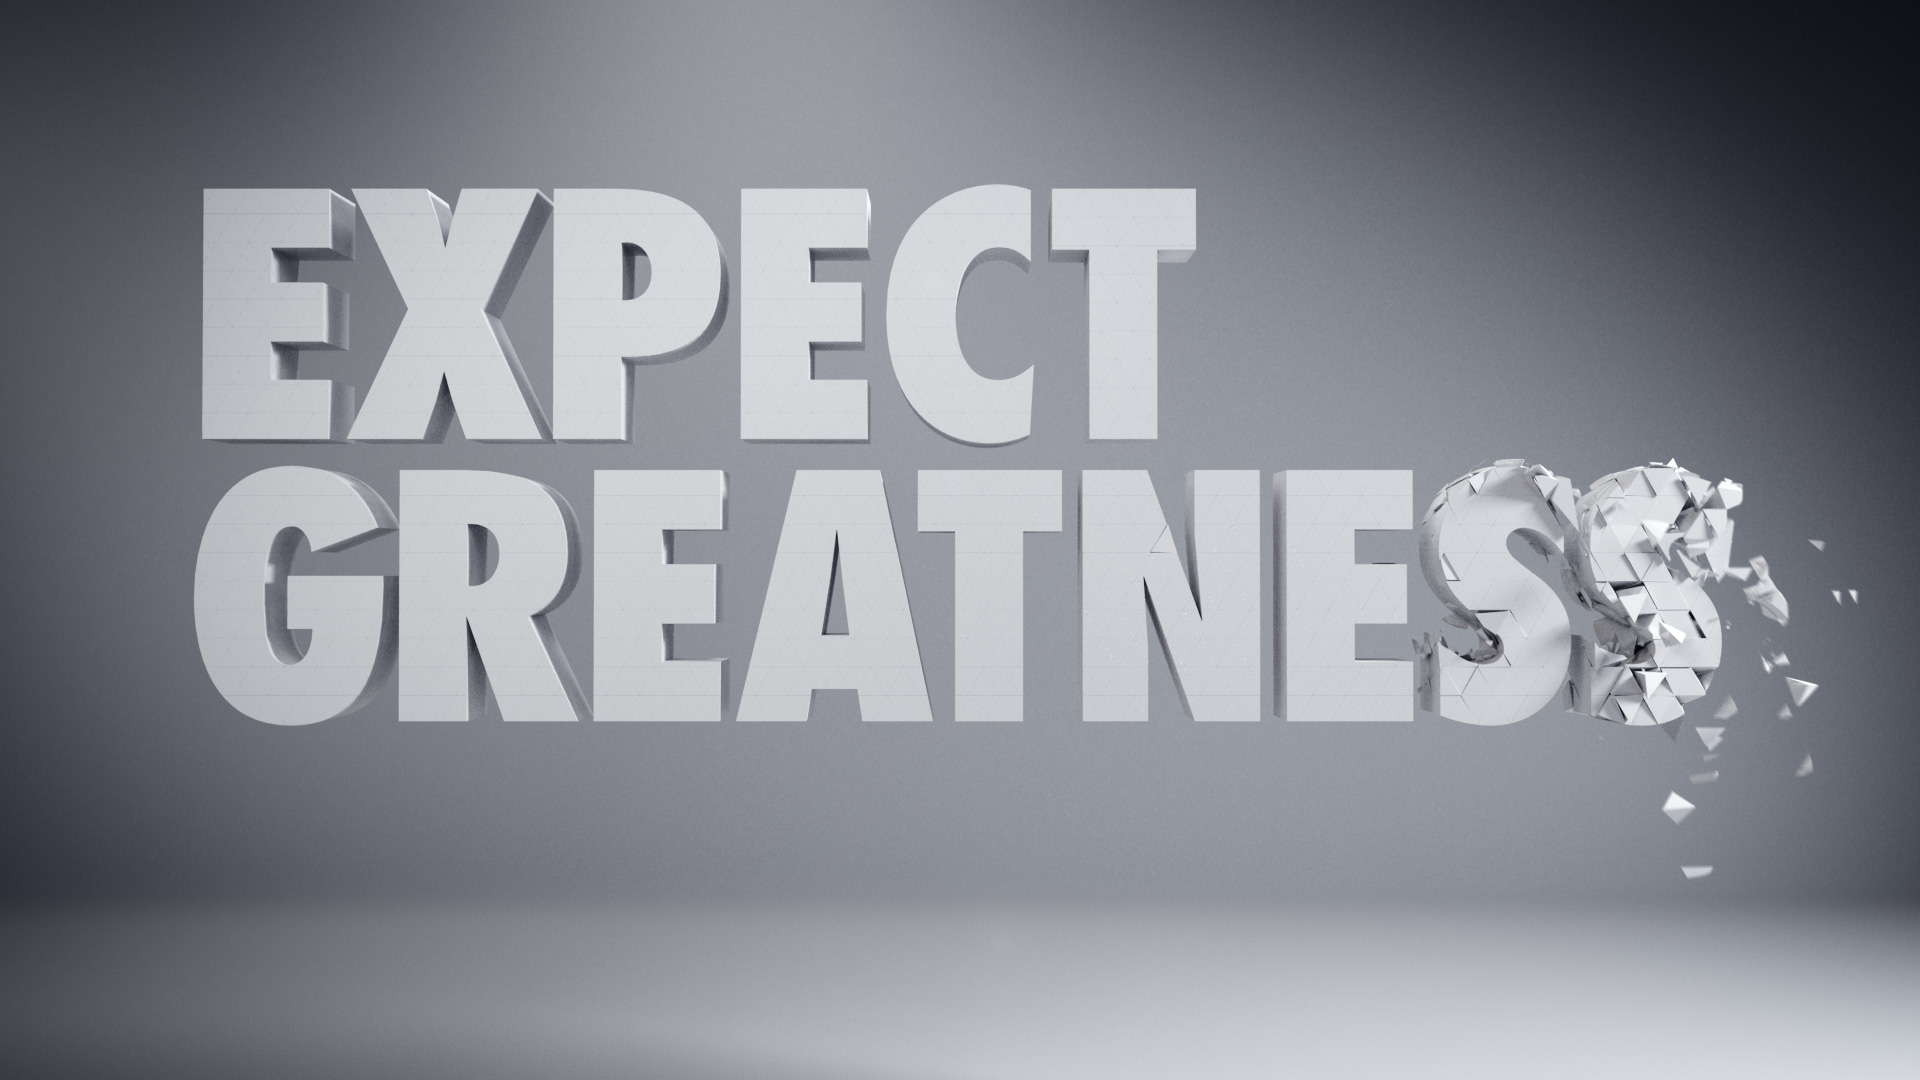 Nike-Expect-Greatness383